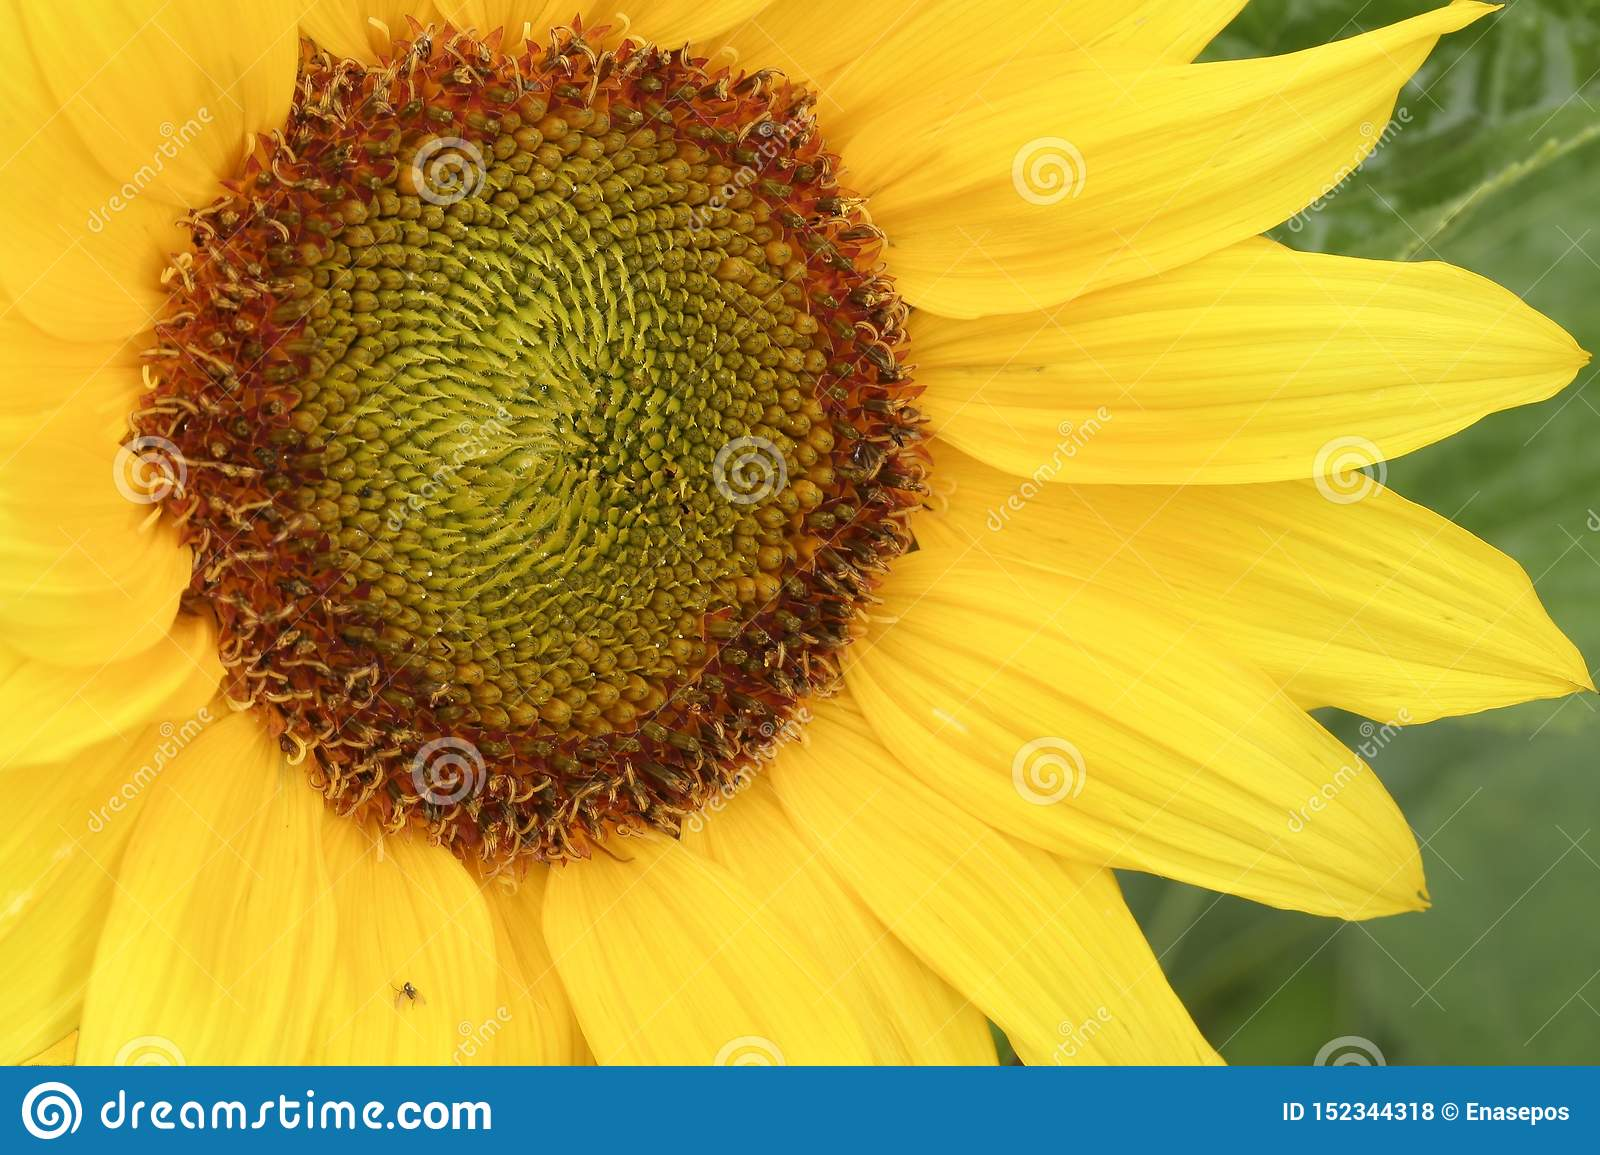 Golden sunflower with small insect